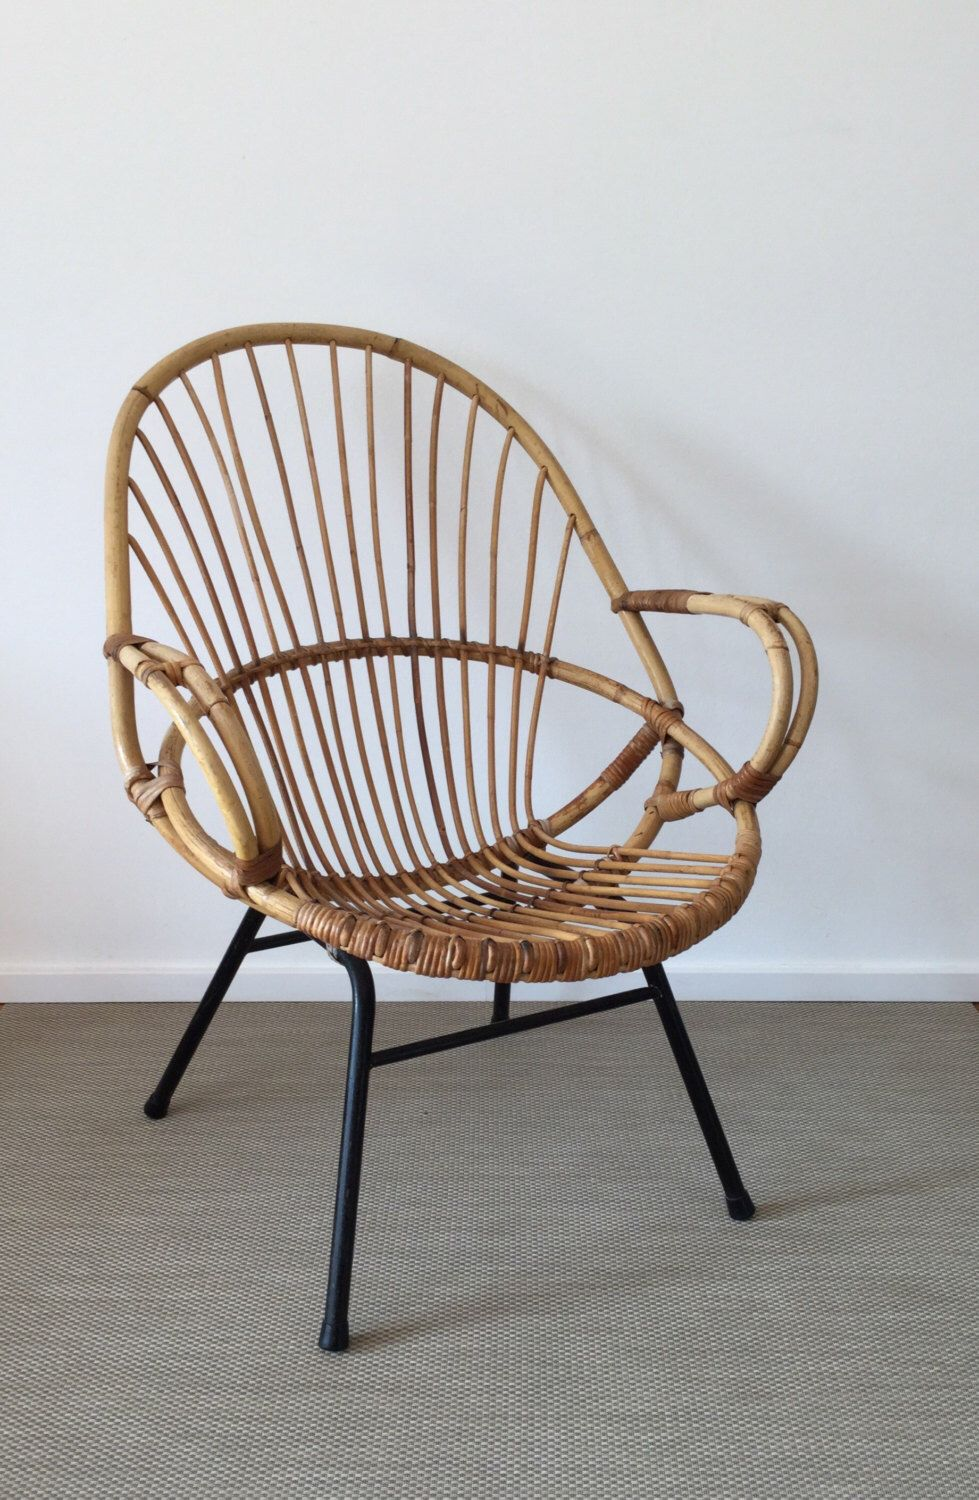 mid century basketchair wicker chairs rattan chair moebelglueck pinterest m bel vintage. Black Bedroom Furniture Sets. Home Design Ideas